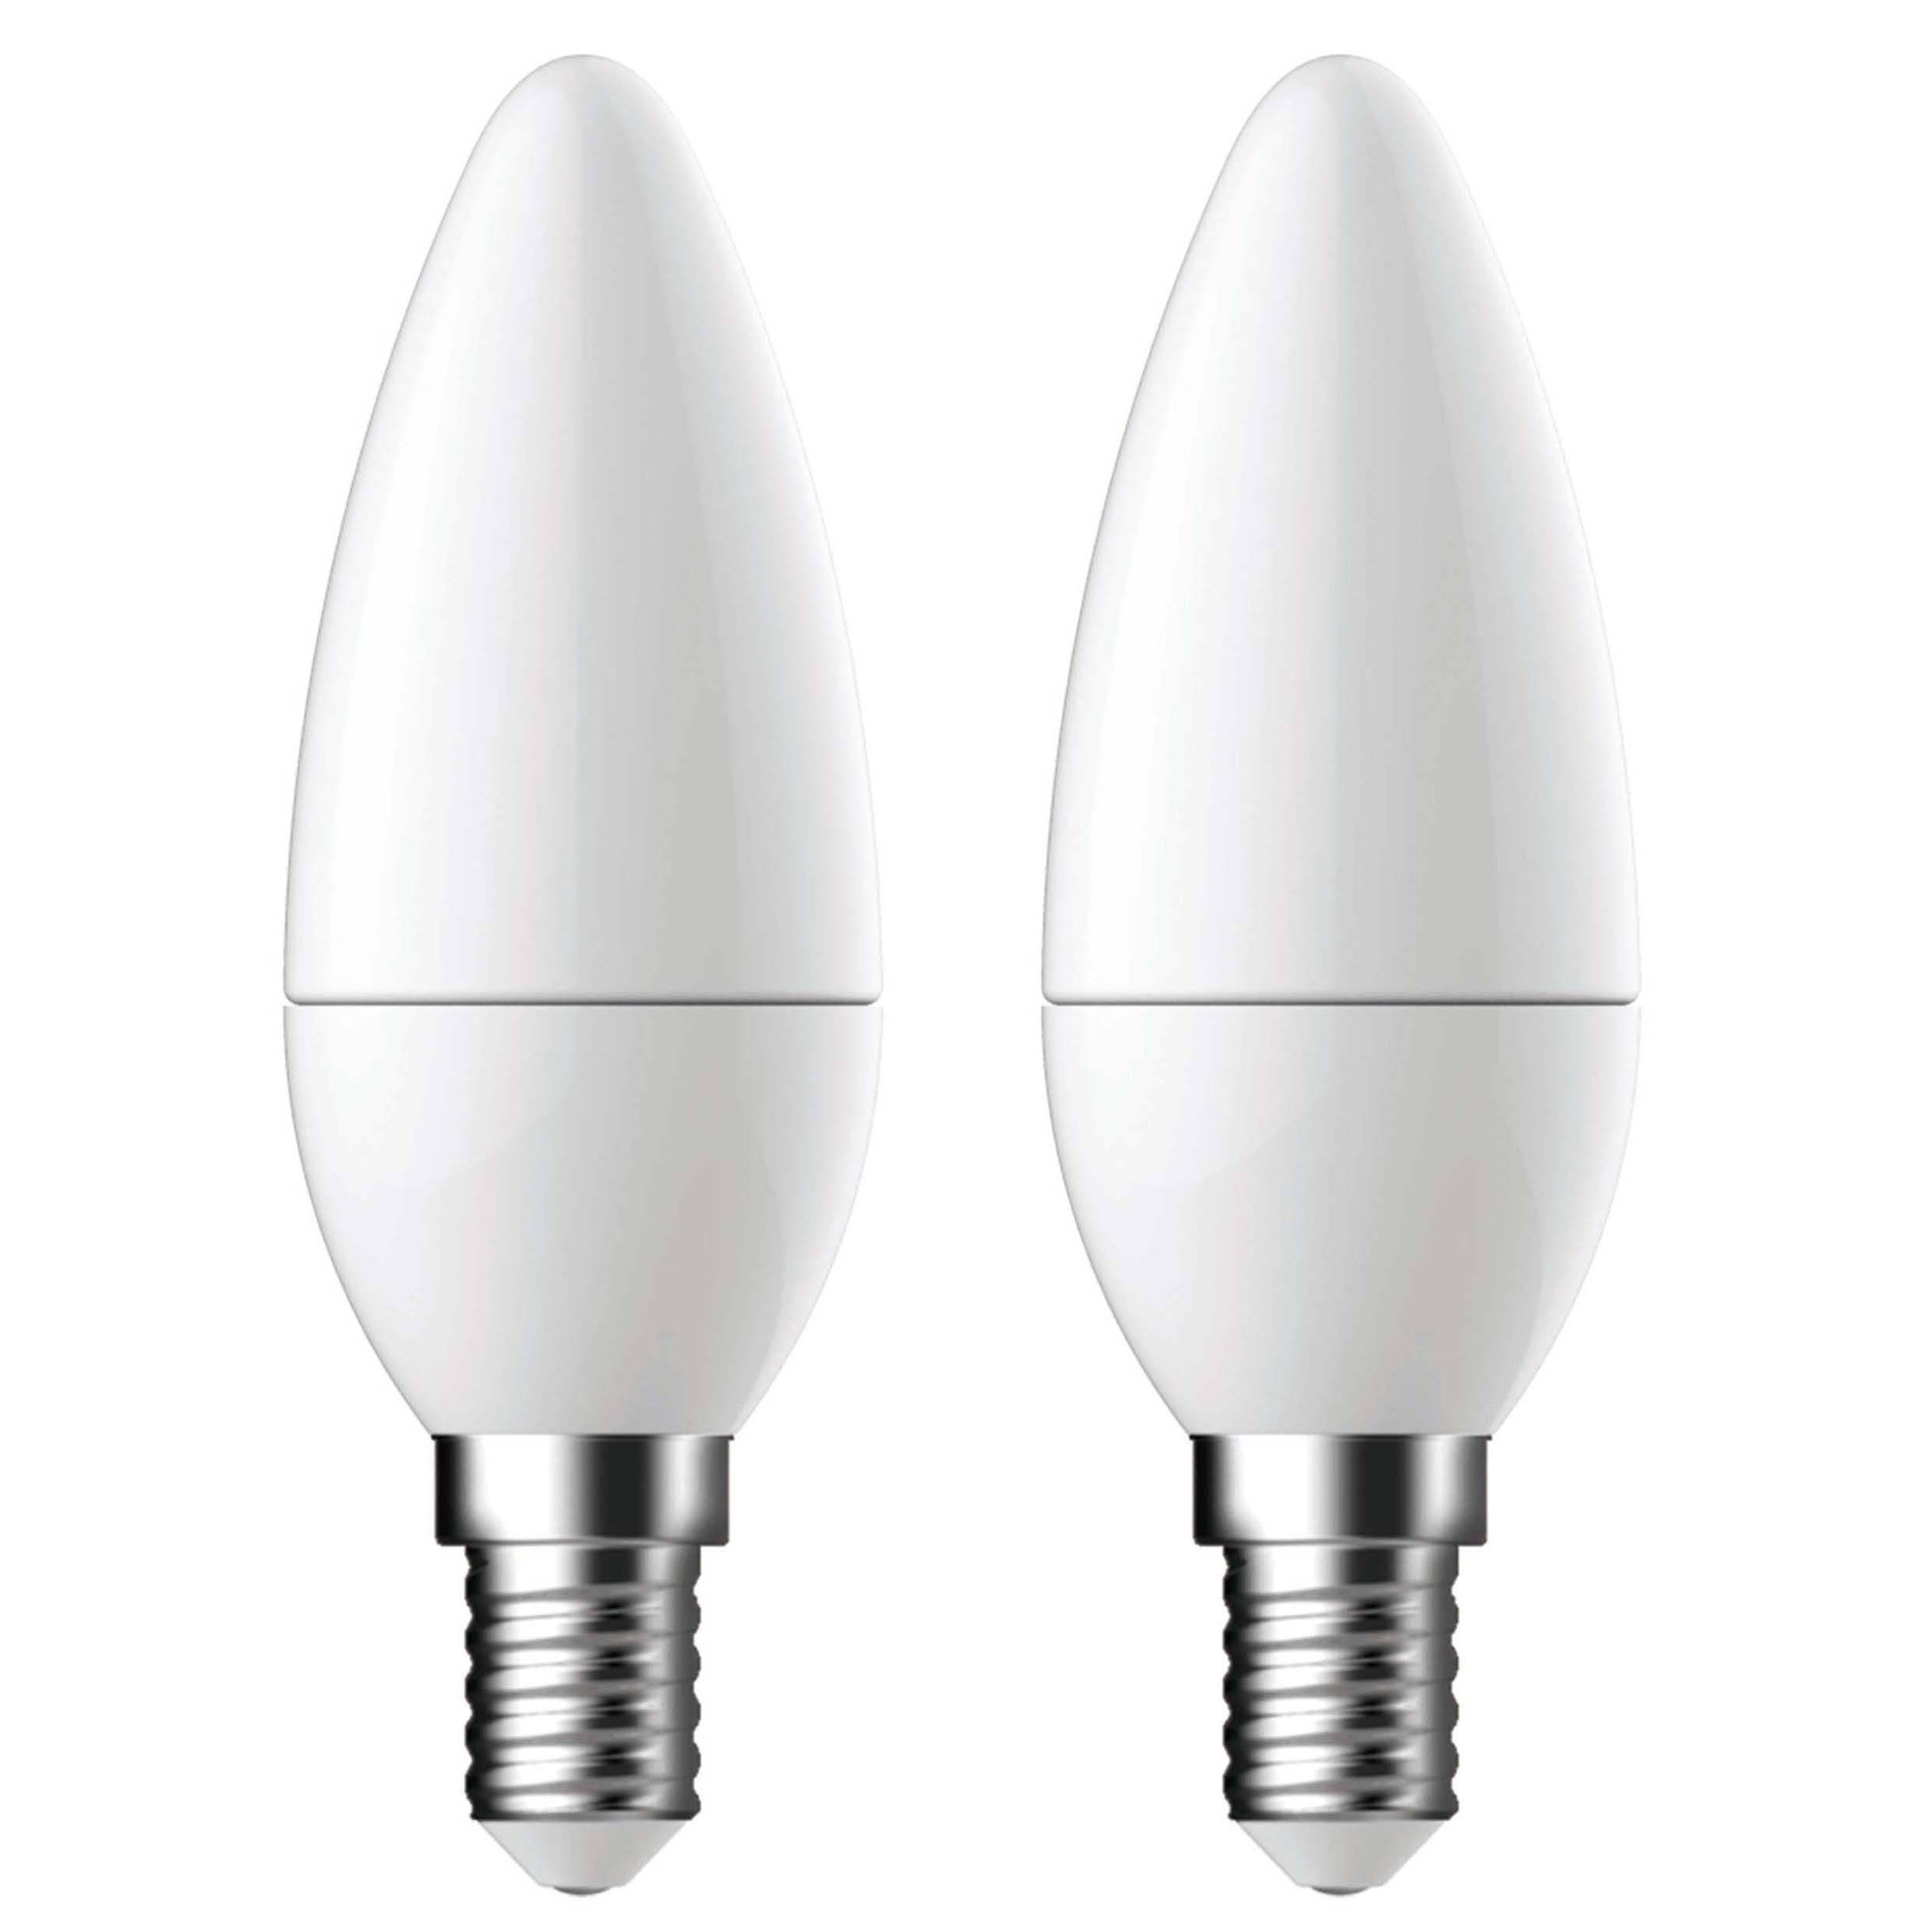 Diall E14 470lm Led Candle Light Bulb, Pack Of 2